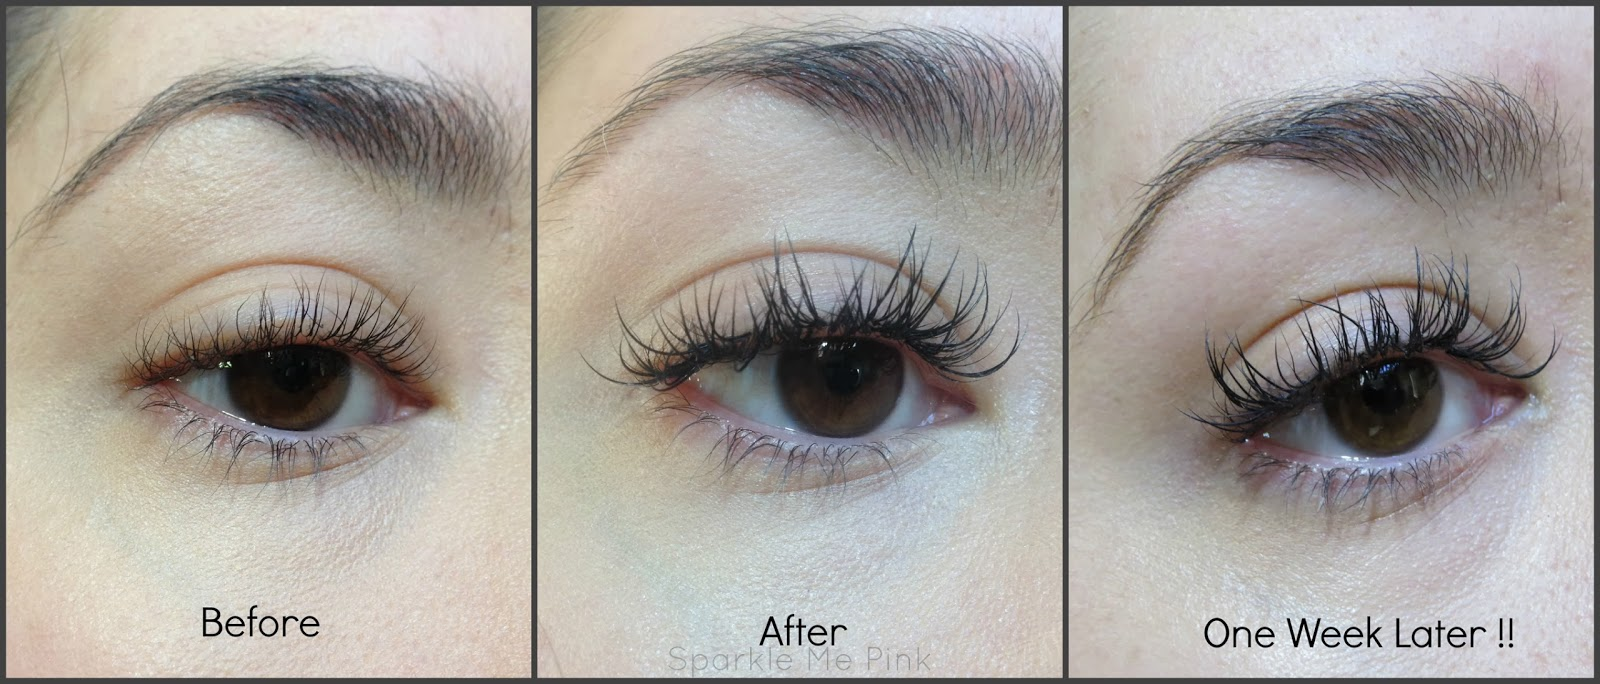 Sparkle Me Pink Eye Lash Extensions Review And Info Lash Out Arizona